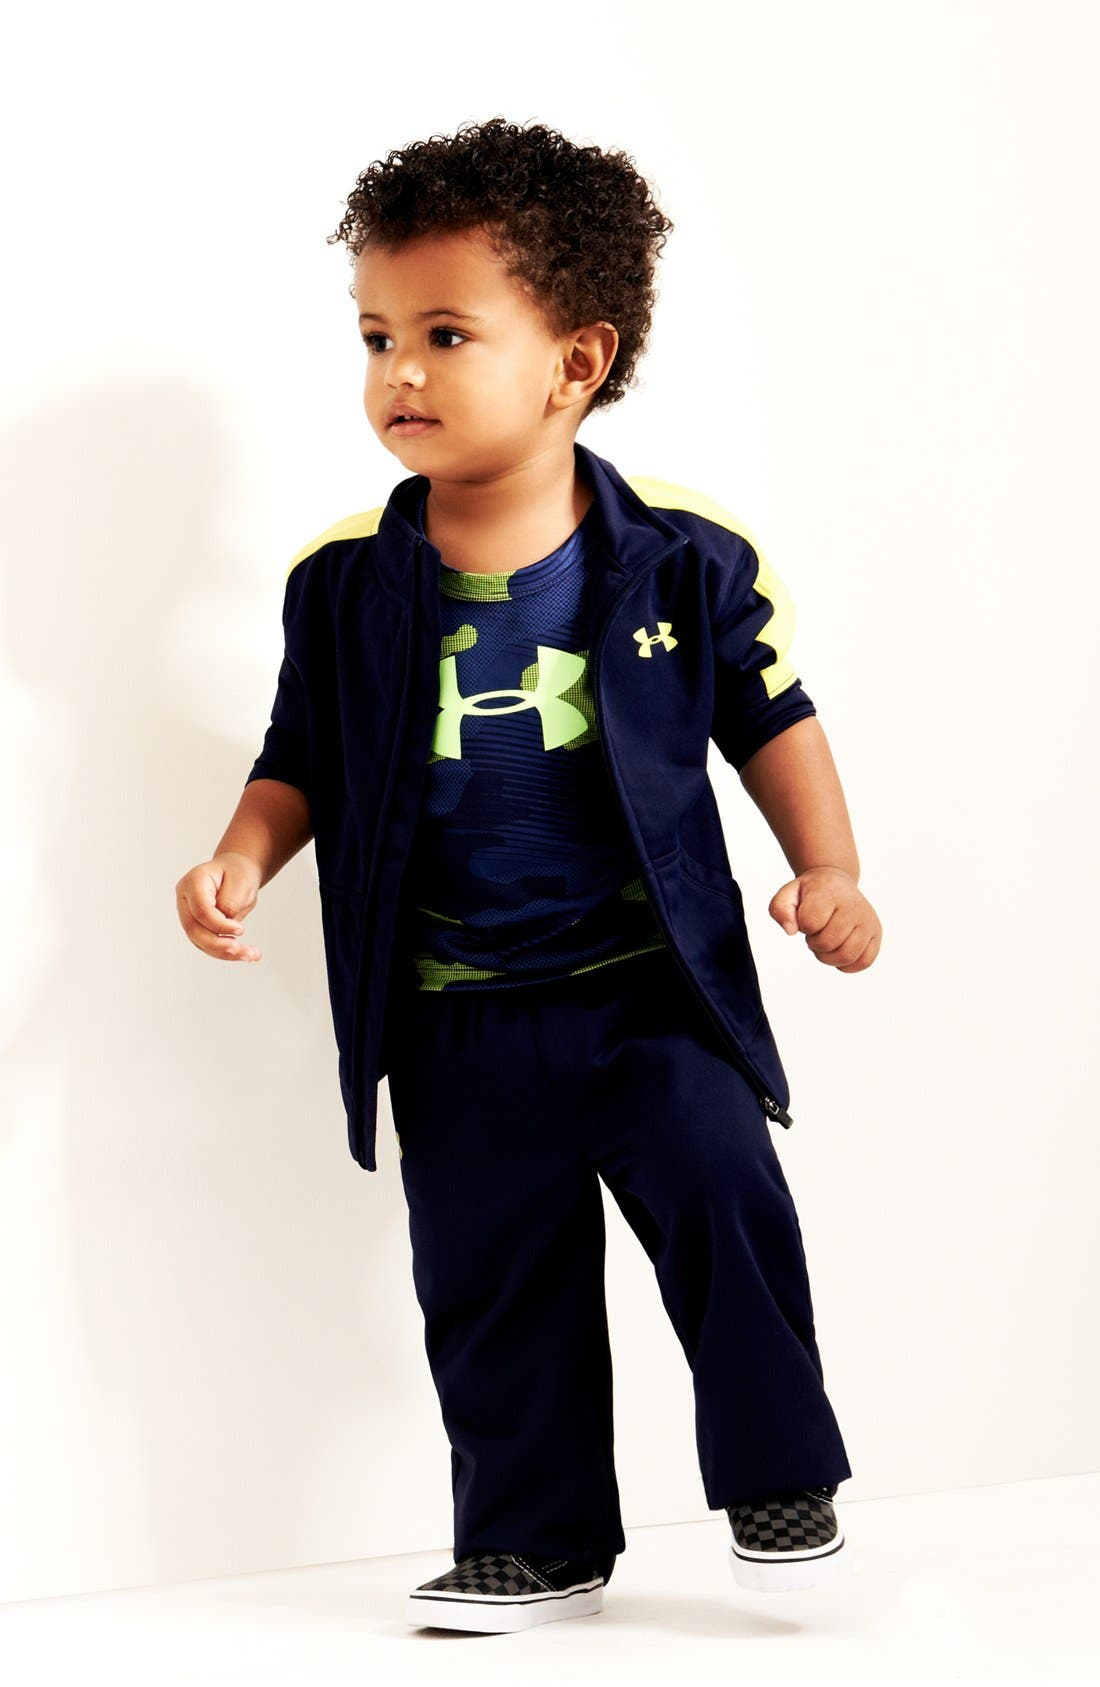 Alternate Image 1 Selected - Under Armour Jacket & Pants & T-Shirt (Baby Boys)